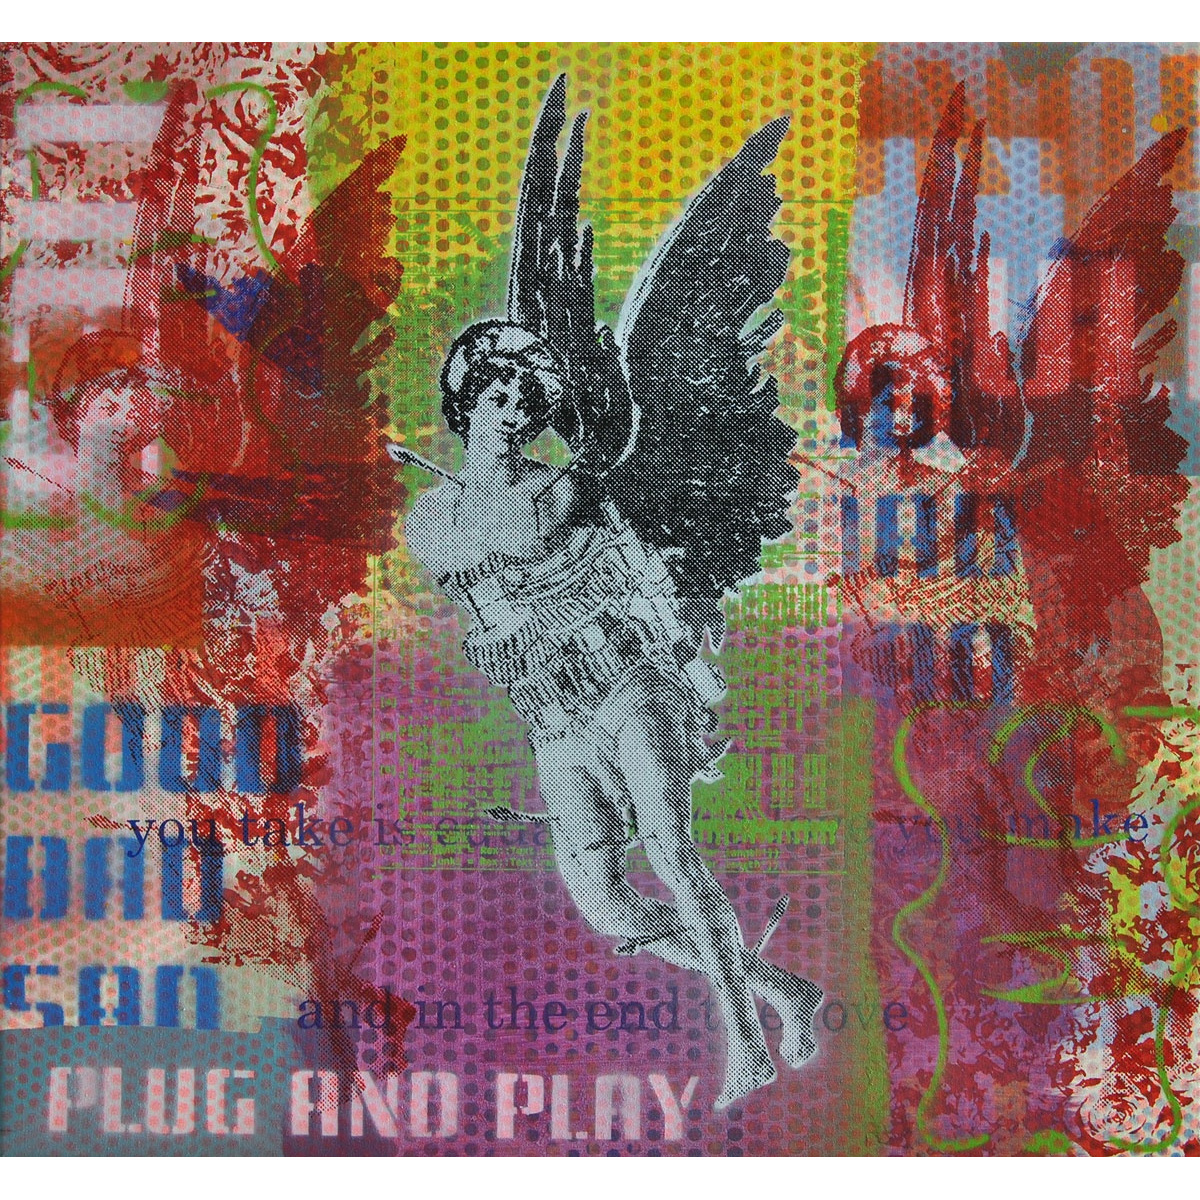 Plug and play II von Harald Klemm